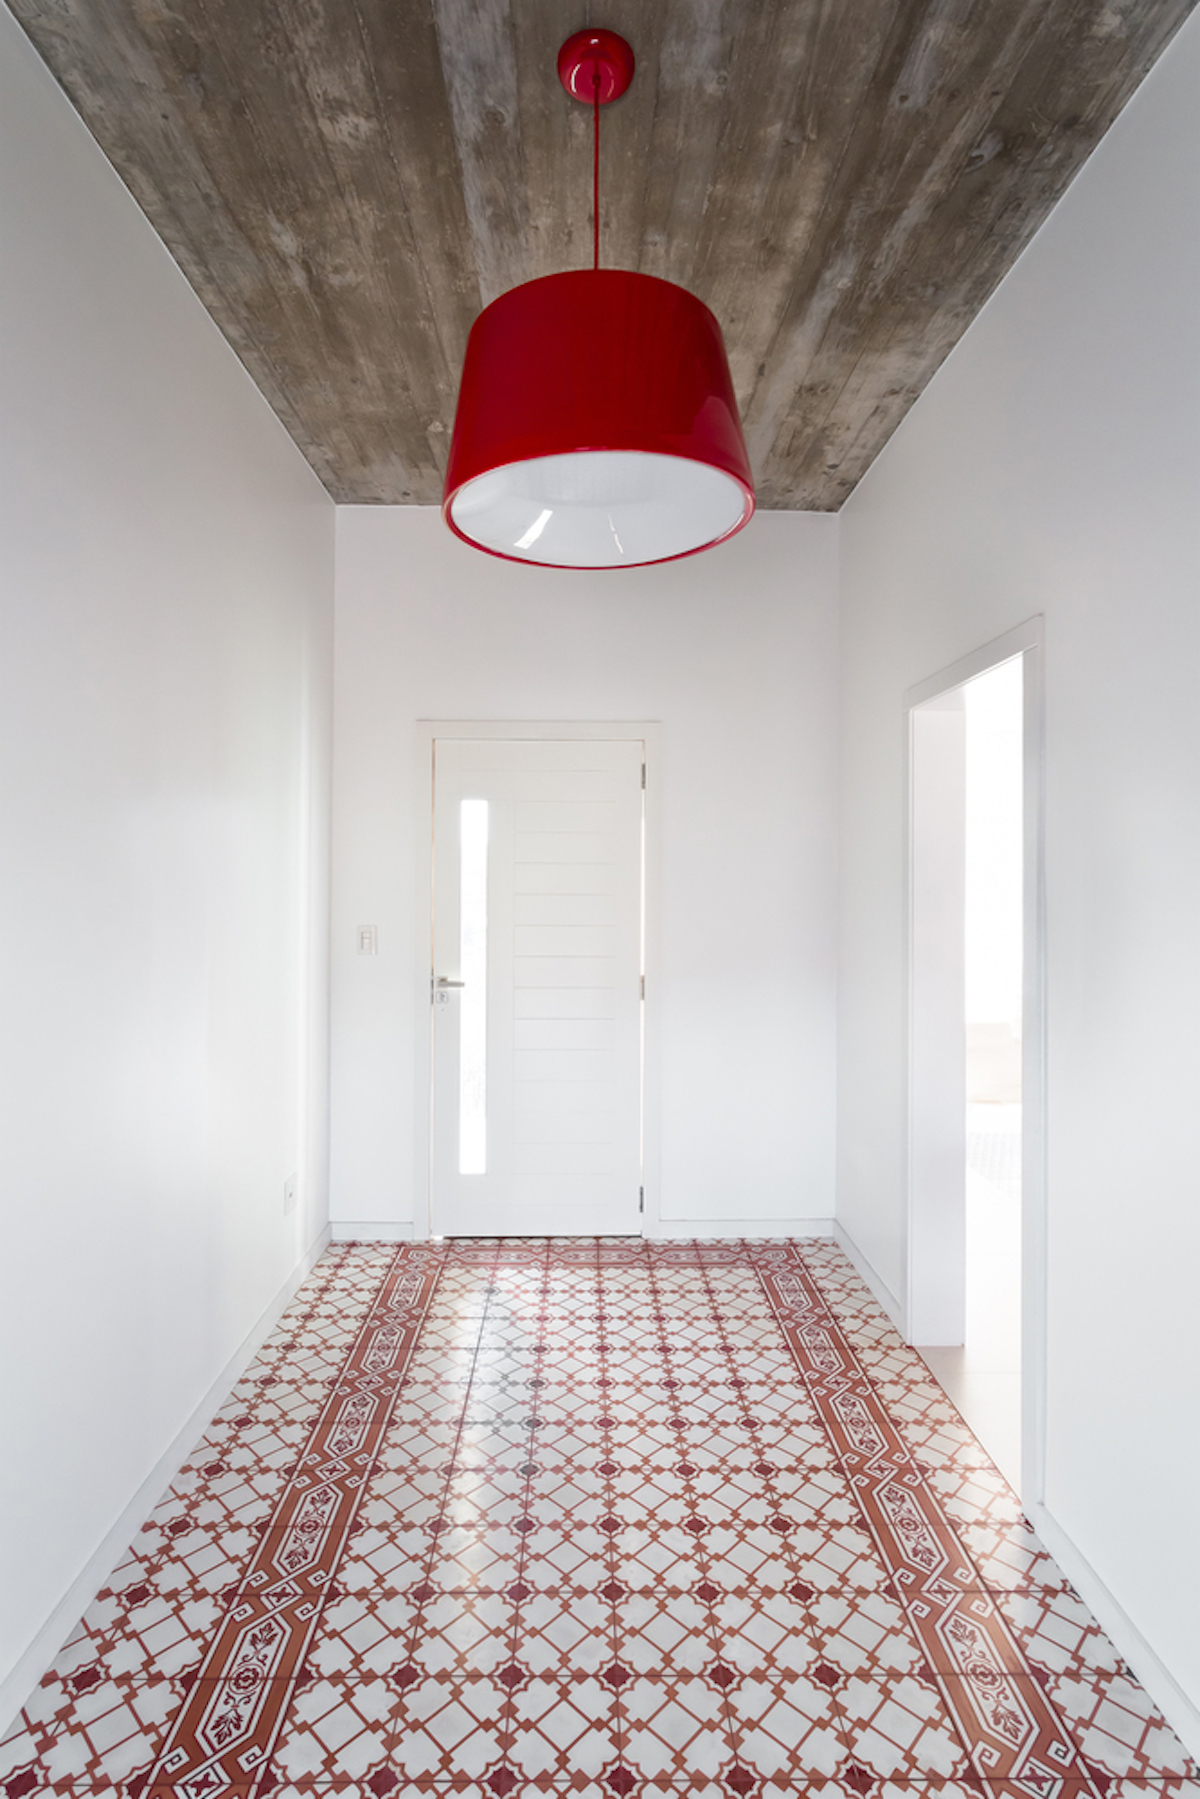 The entrance hallway is white with an exposed concrete ceiling and red accent details